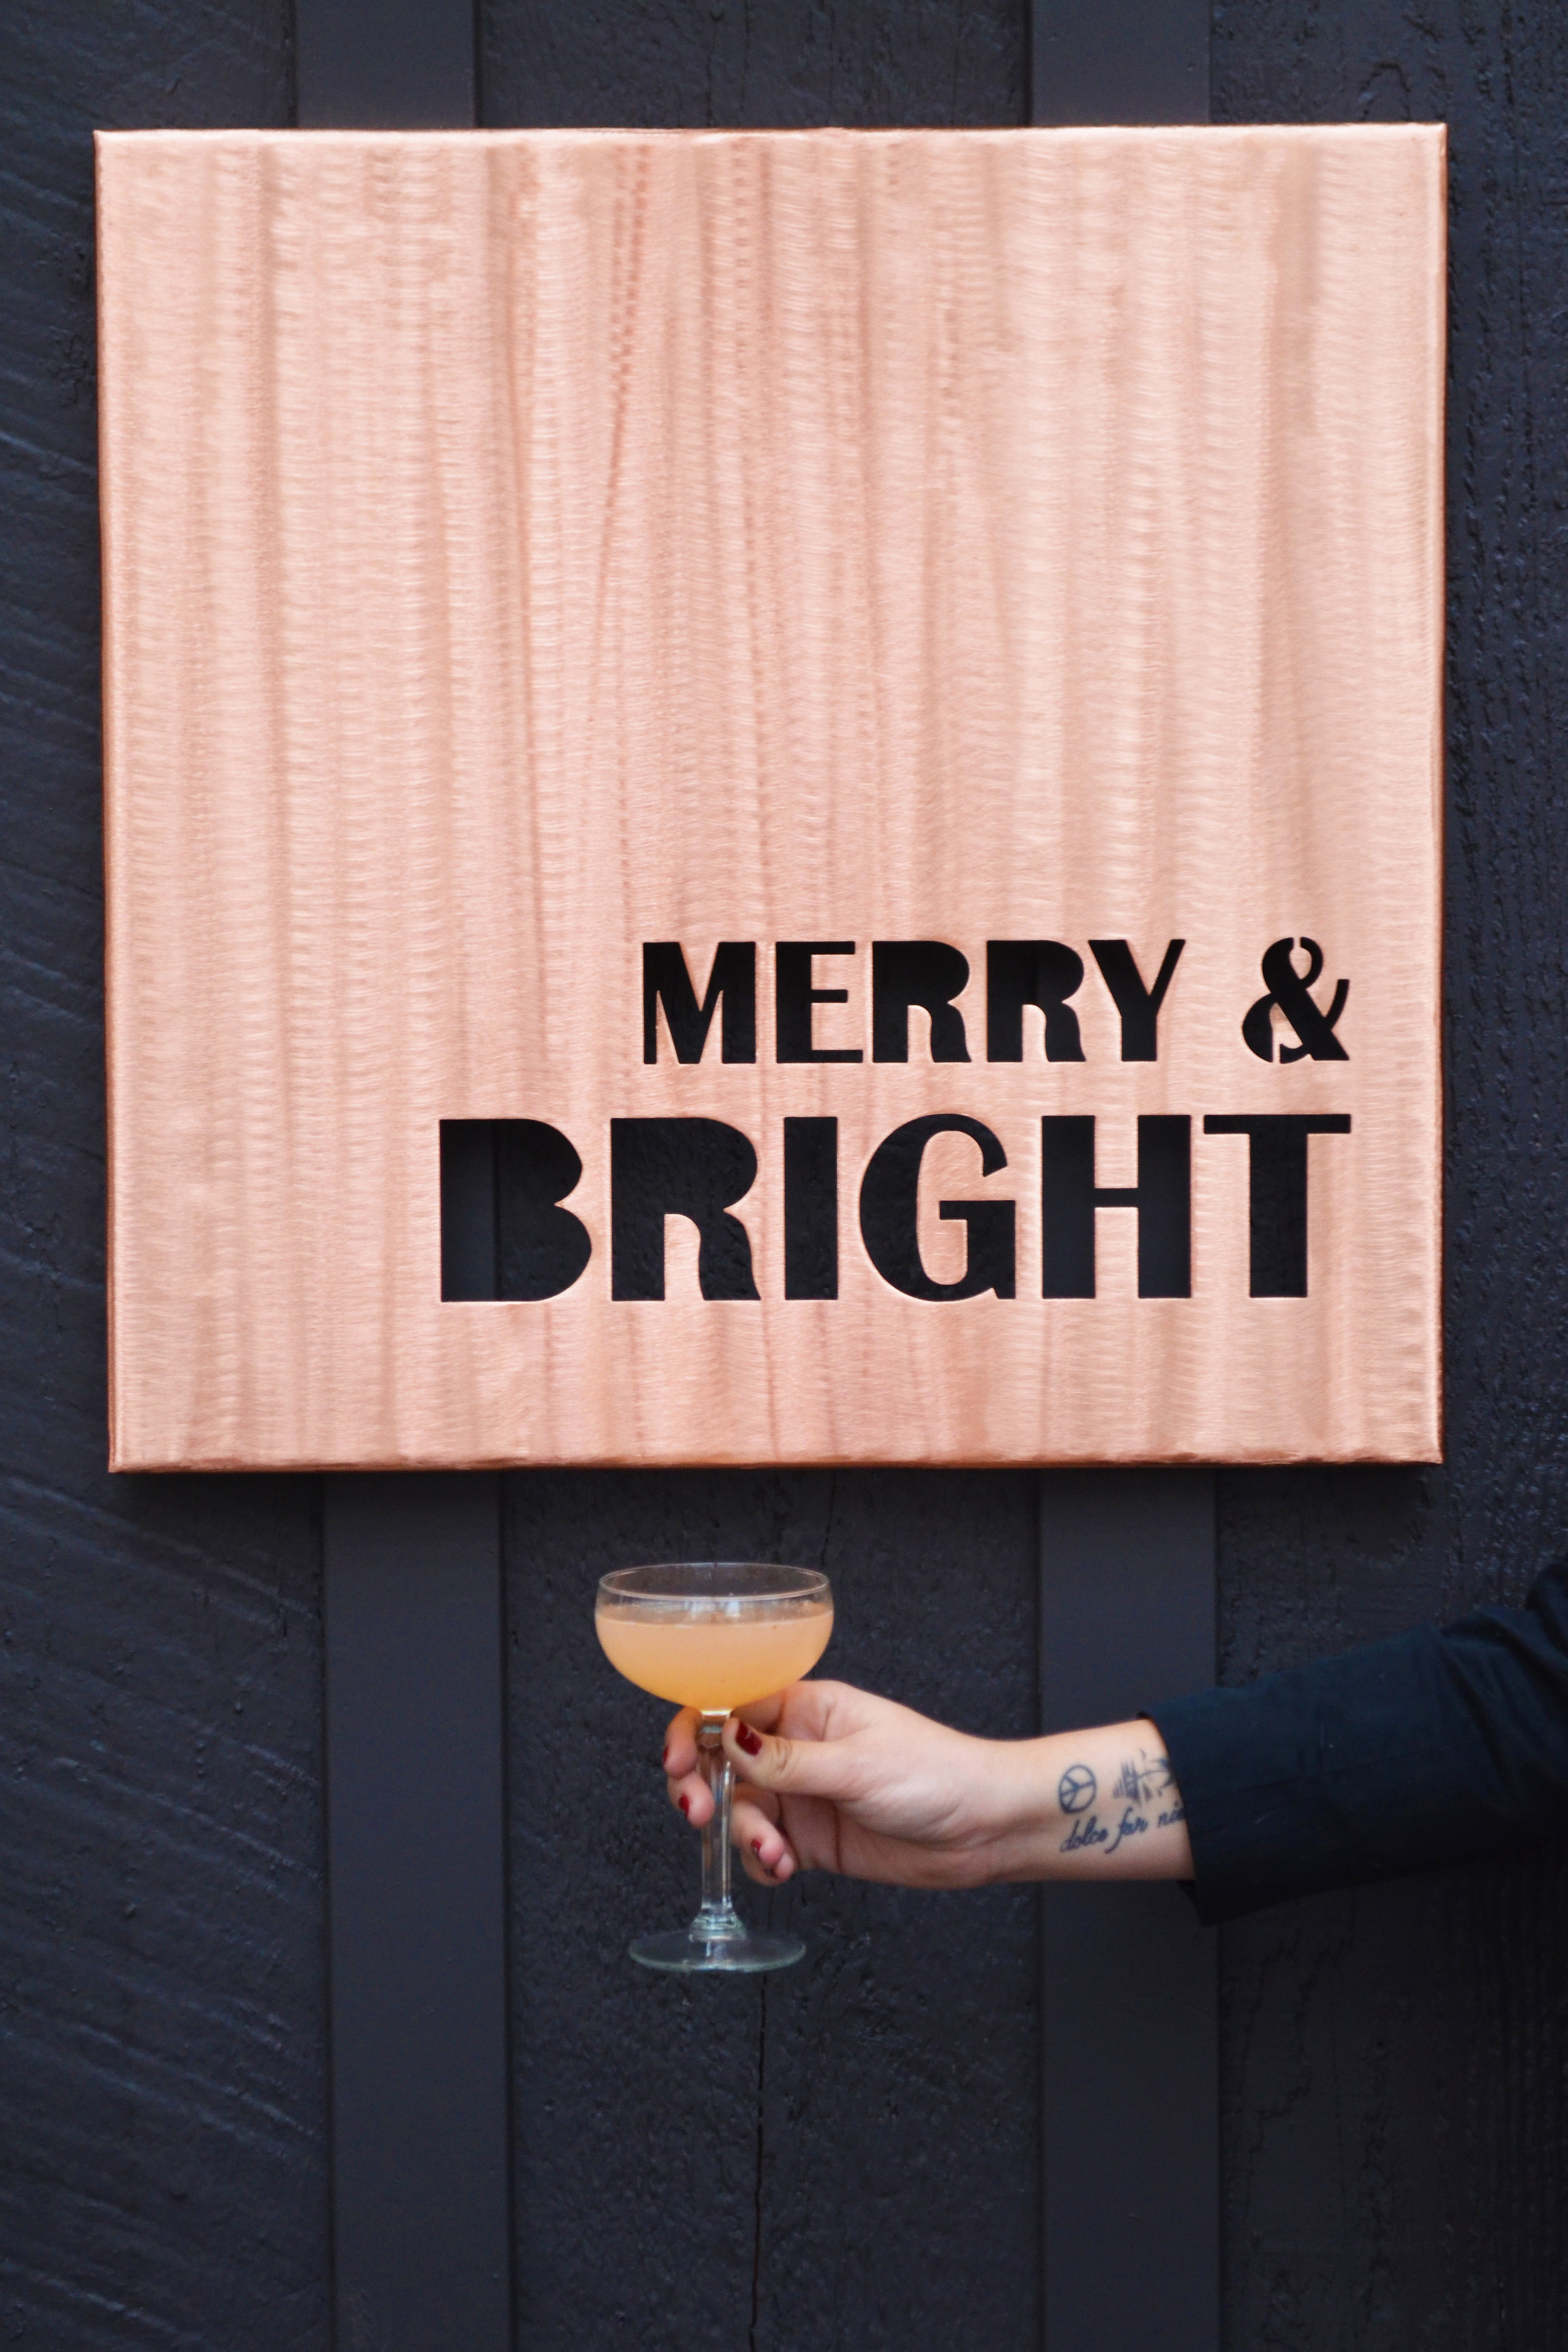 The Above a Persimmon cocktail and a matching bit of festive copper wall art (by me! Not entirely shameless plug:    katerichardsart.com   )